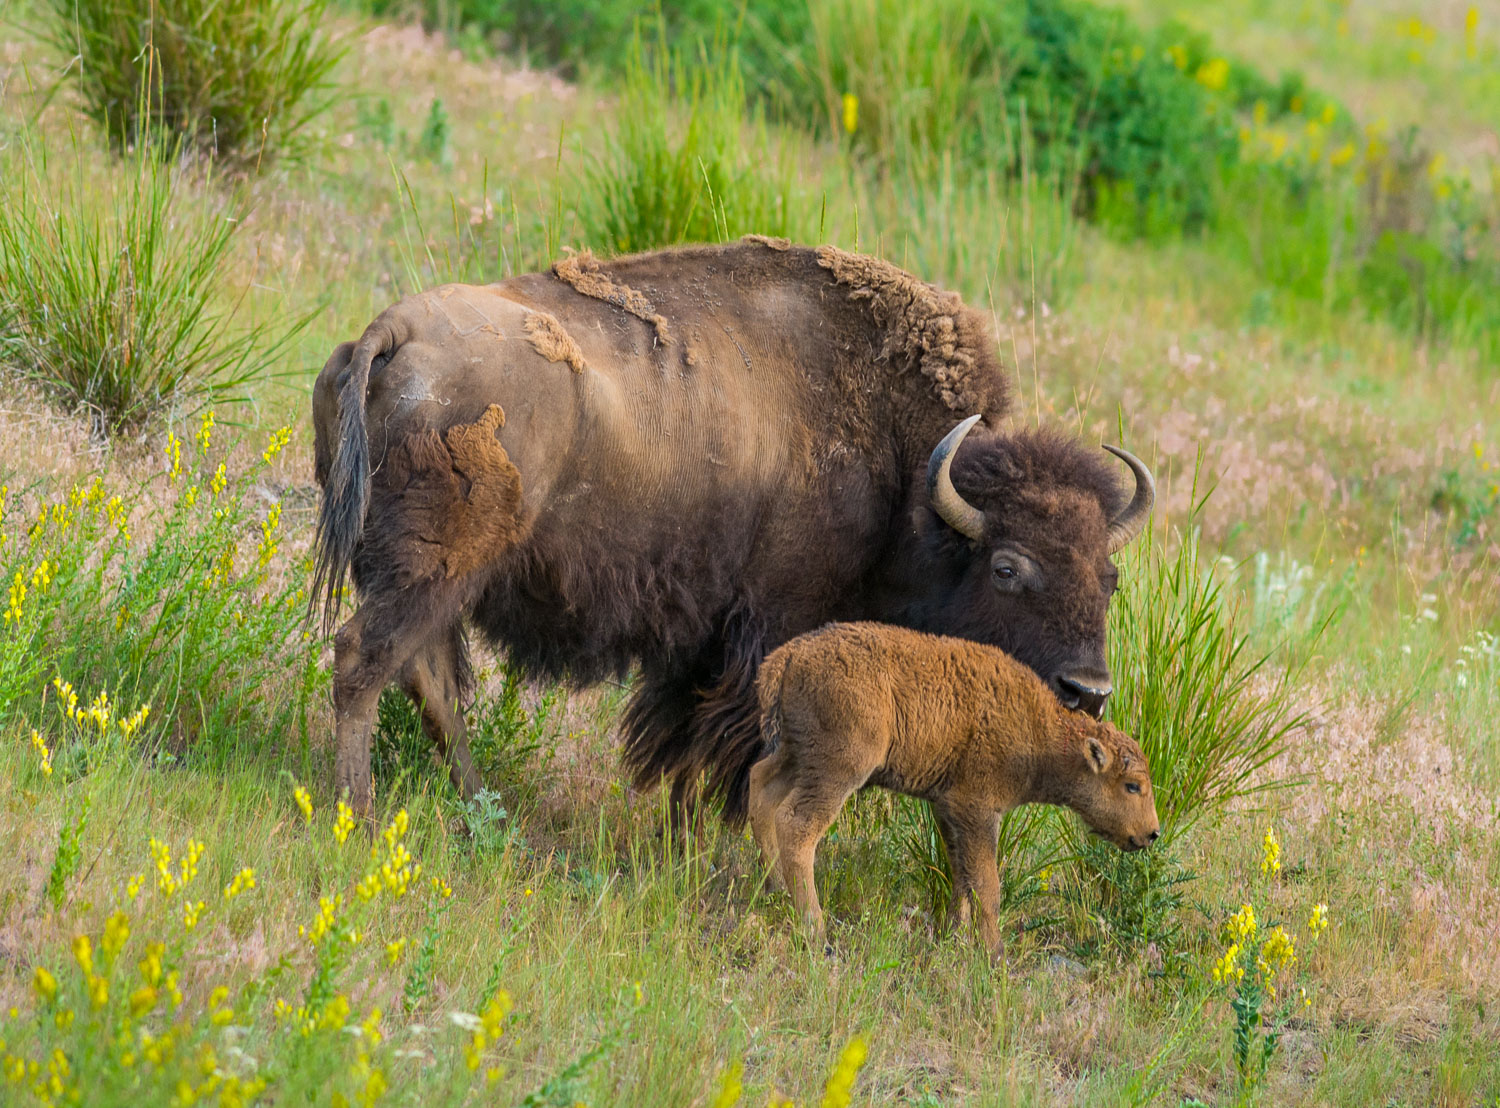 Mother and young Bison grazing at National Bison Range,near Missoula and Moise, Montana maintained by U.S Fish and Wildlife Service, , National Wildlife Refuge, Native Palouse Prairie Grassland, Dalmation Toadflax is invasive weed